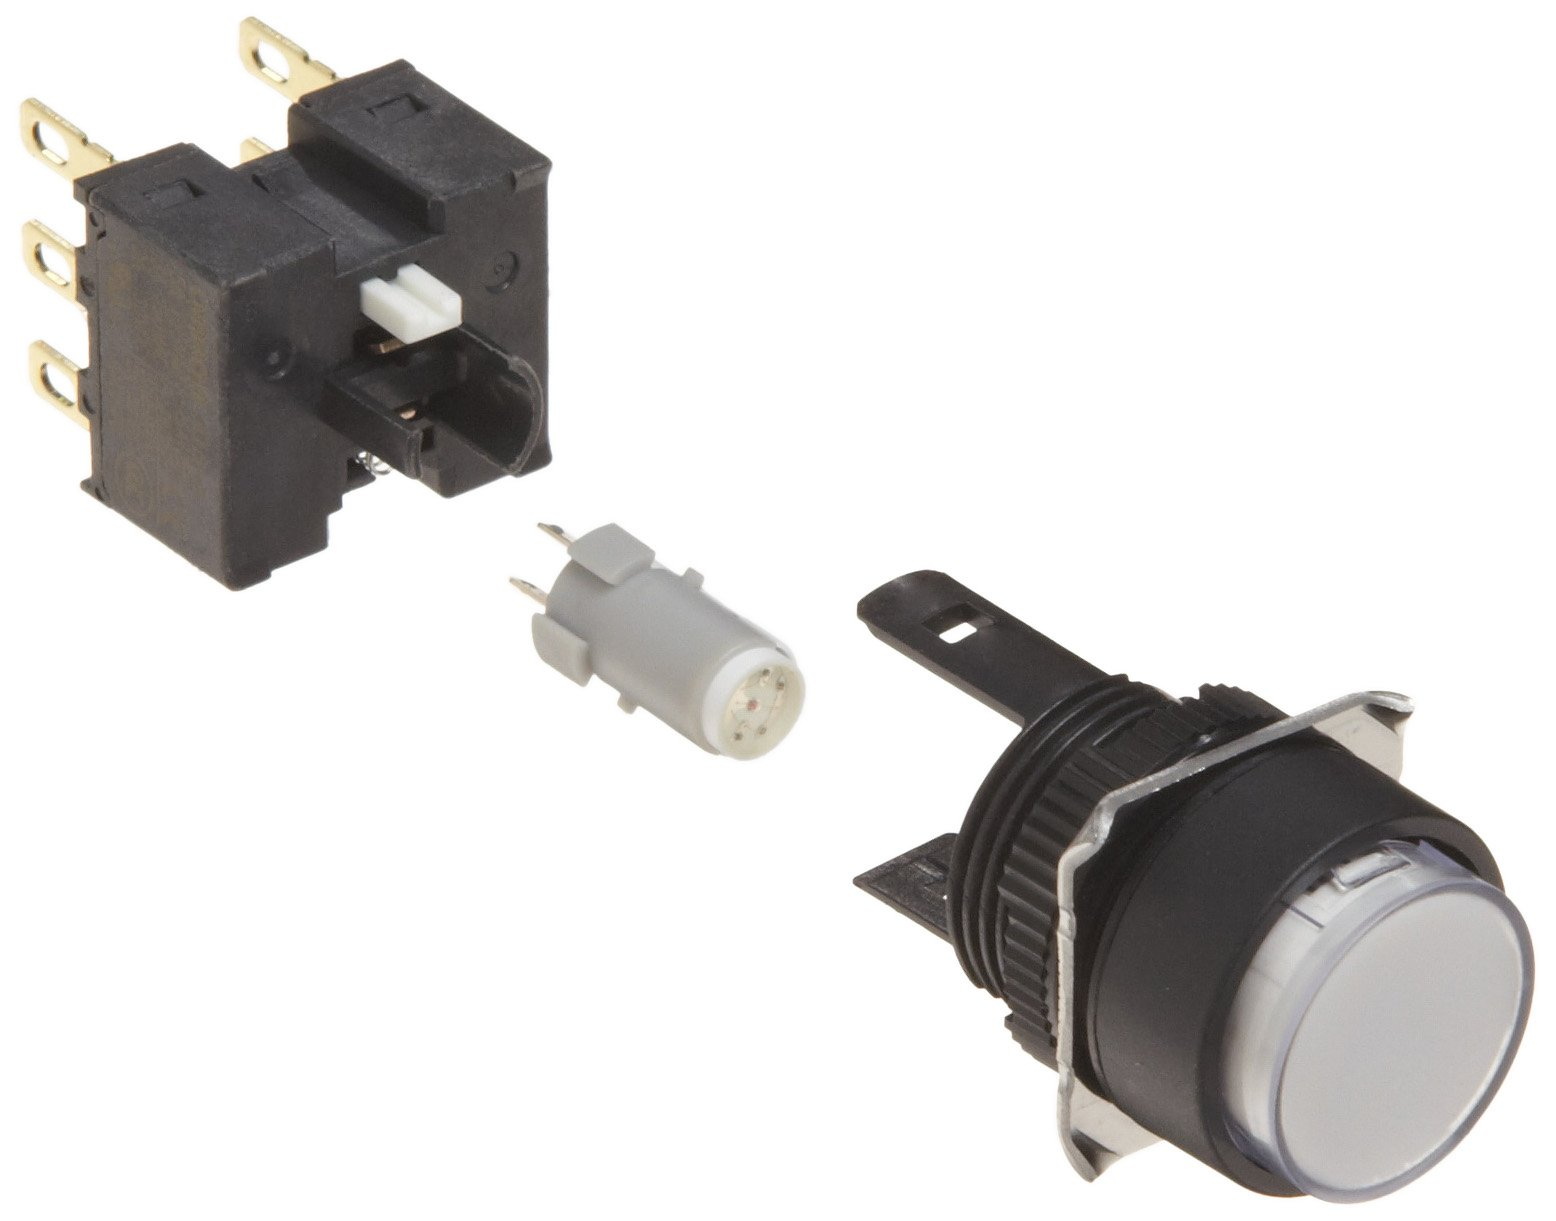 Omron A165L-TWM-24D-2 Projection Type Pushbutton and Switch, Solder Terminal, IP65 Oil-Resistant, 16mm Mounting Aperture, LED Lighted, Momentary Operation, Round, White, 24 VDC Rated Voltage, Double Pole Double Throw Contacts